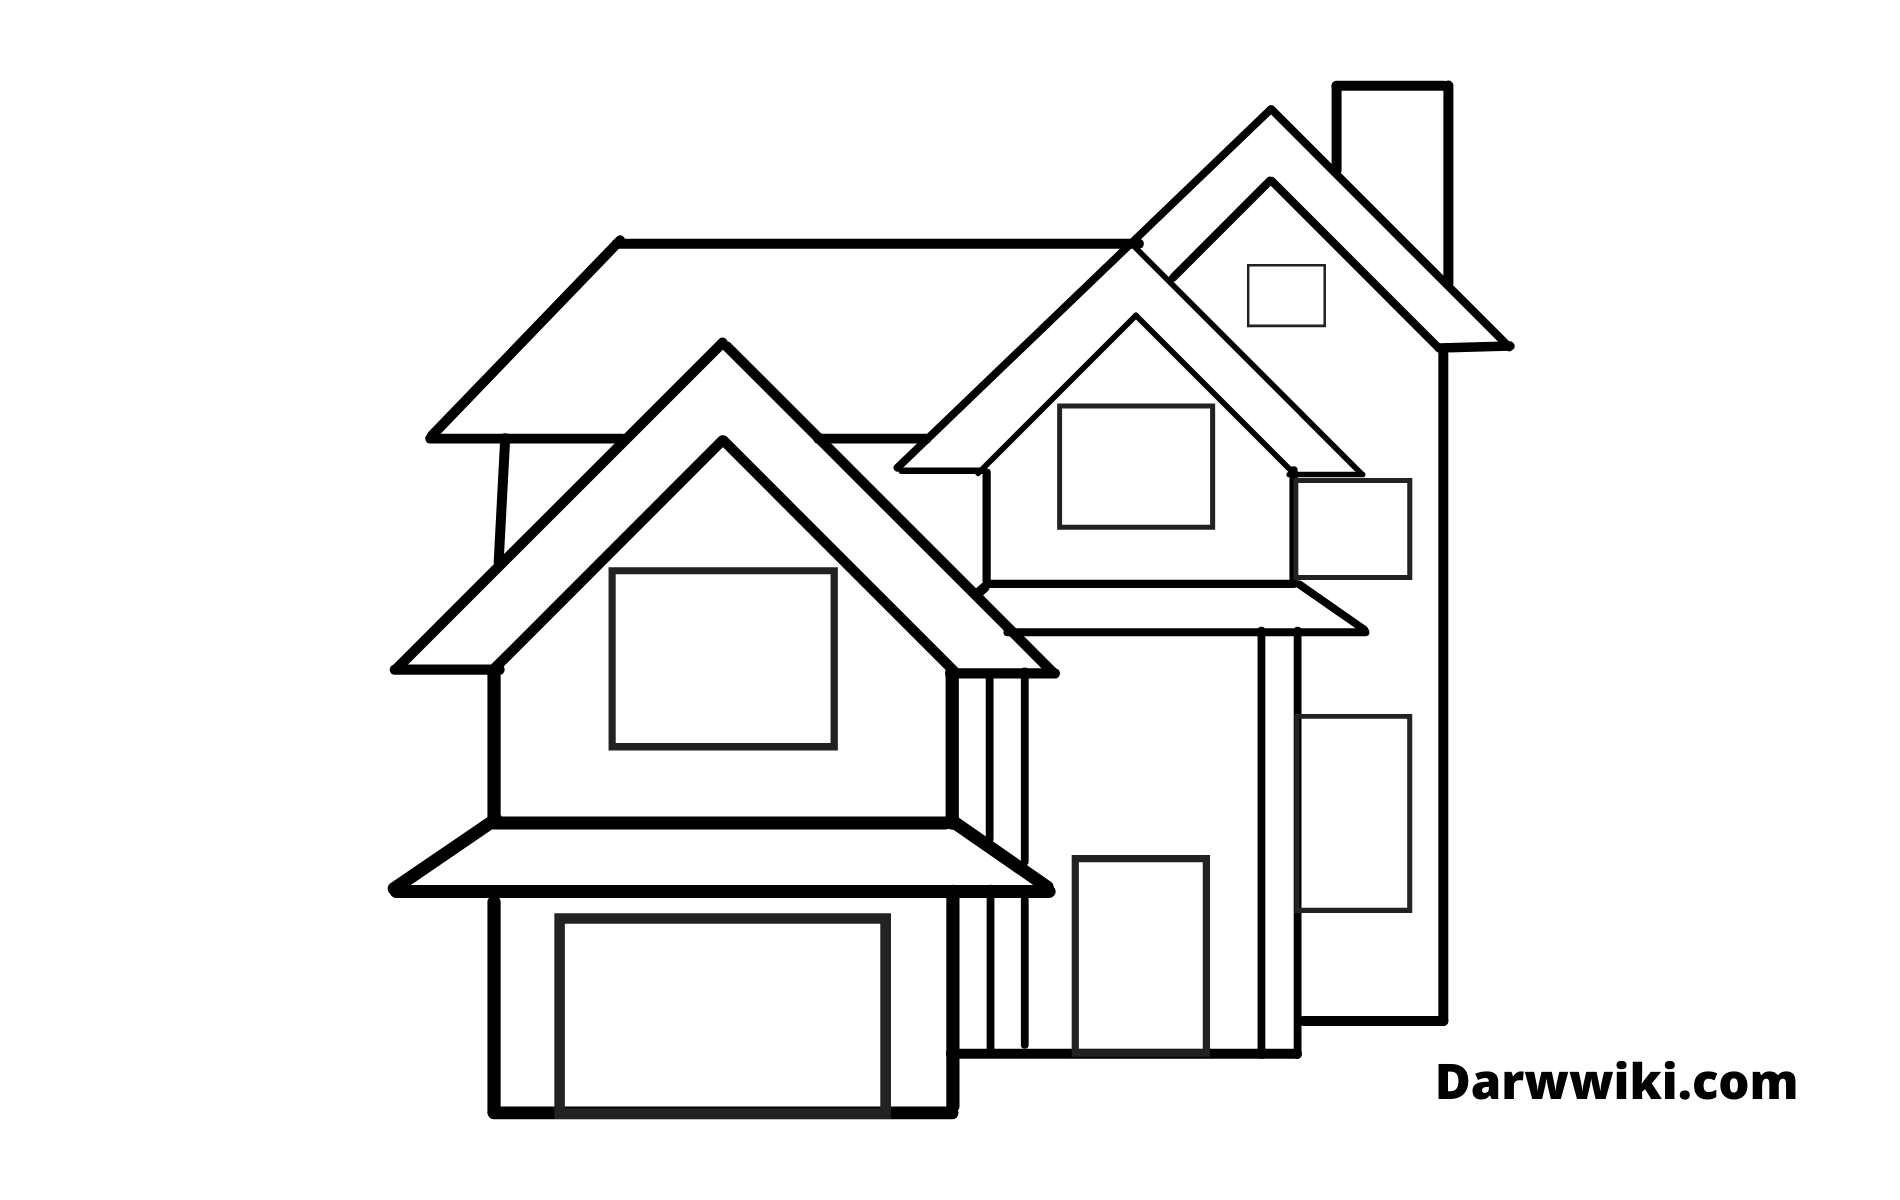 How To Draw House Step 8 - Draw Upper Roof